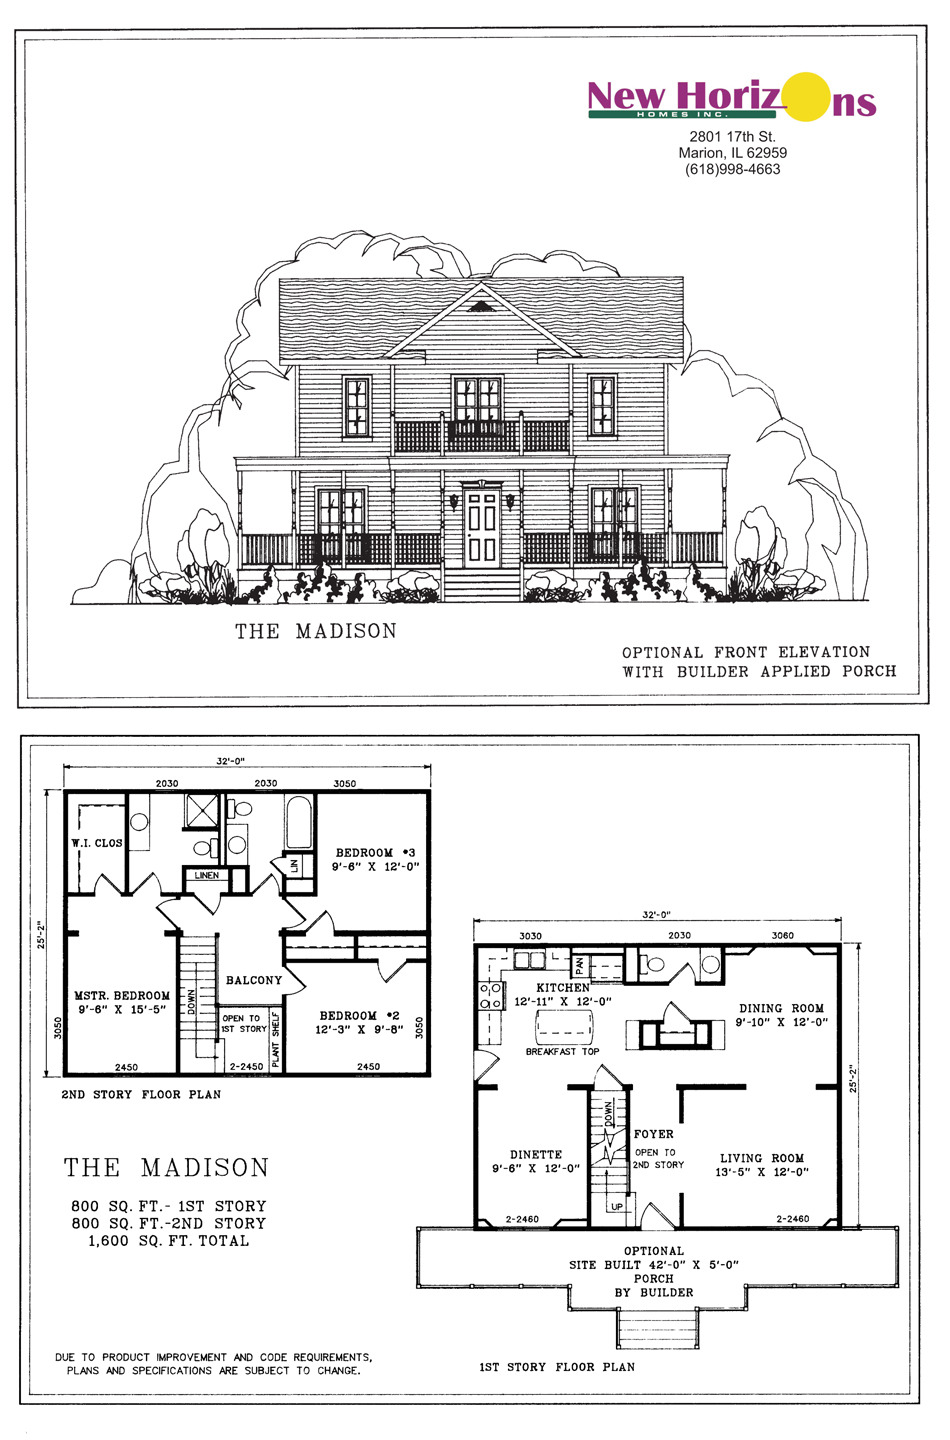 the madison storey house floor plan dwg two designs samples and elevation of south indian front double houses with balcony small plans residential autocad files free